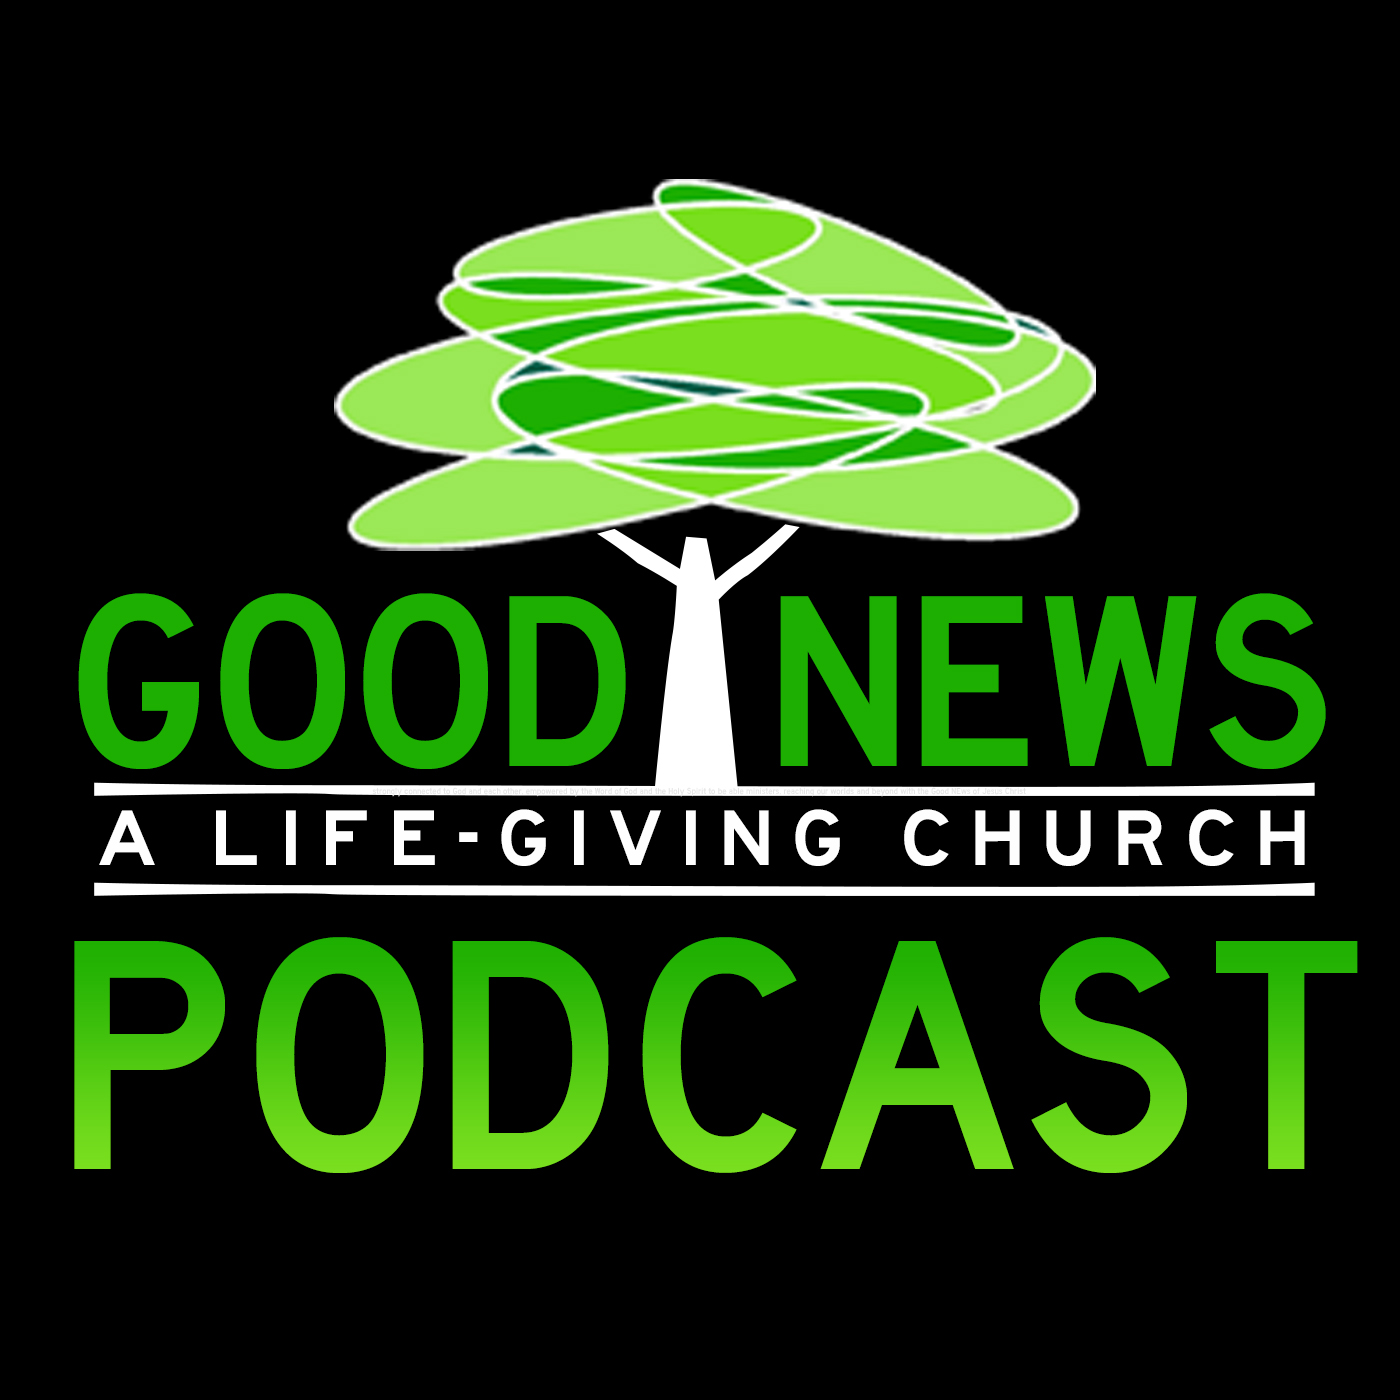 Good News Church Podcast